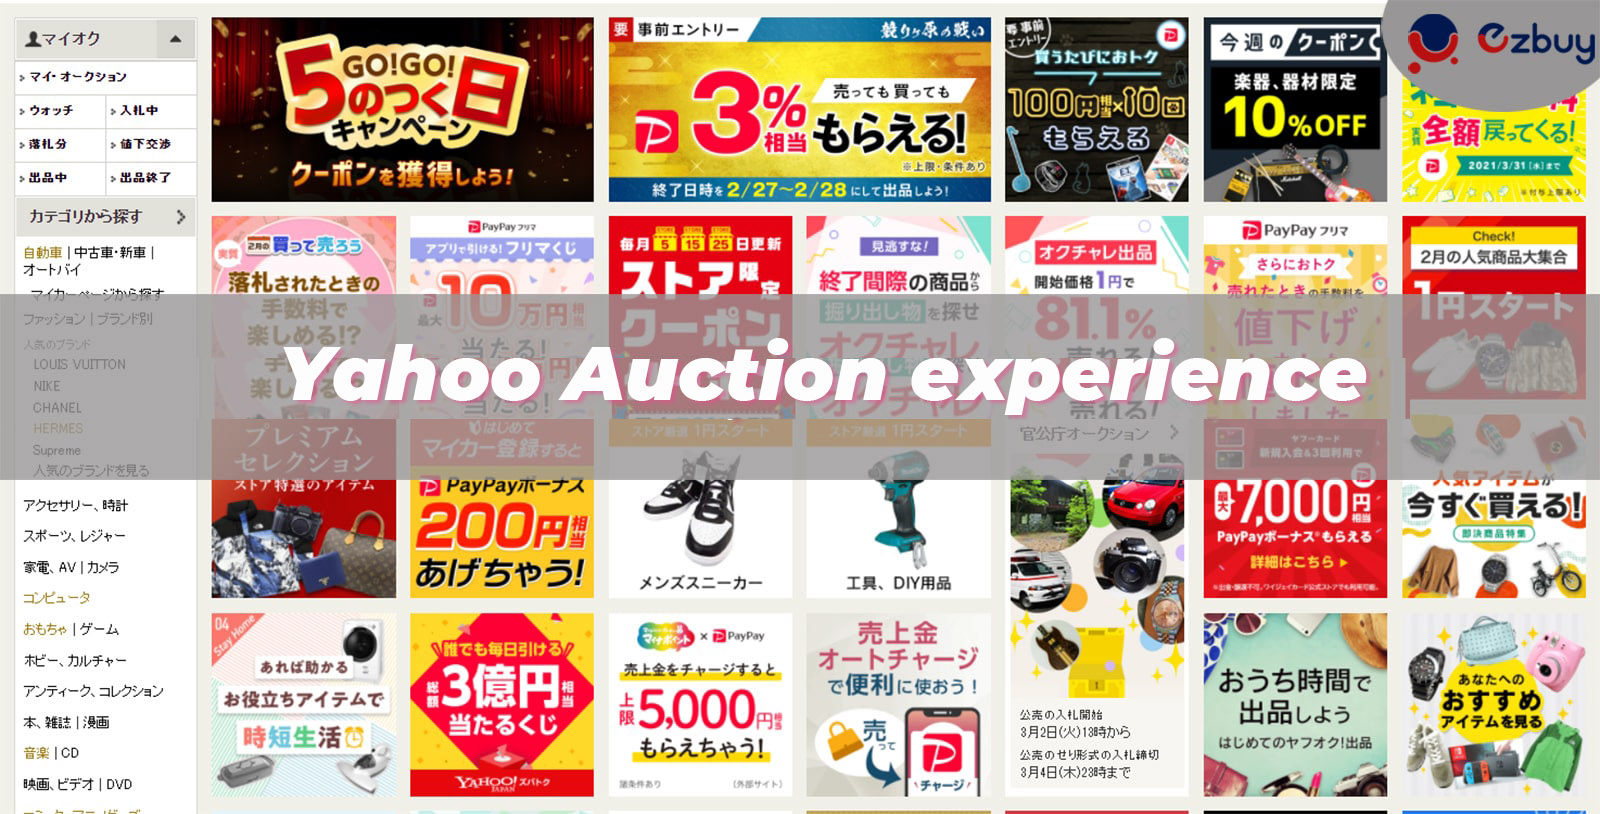 Yahoo Auction experience